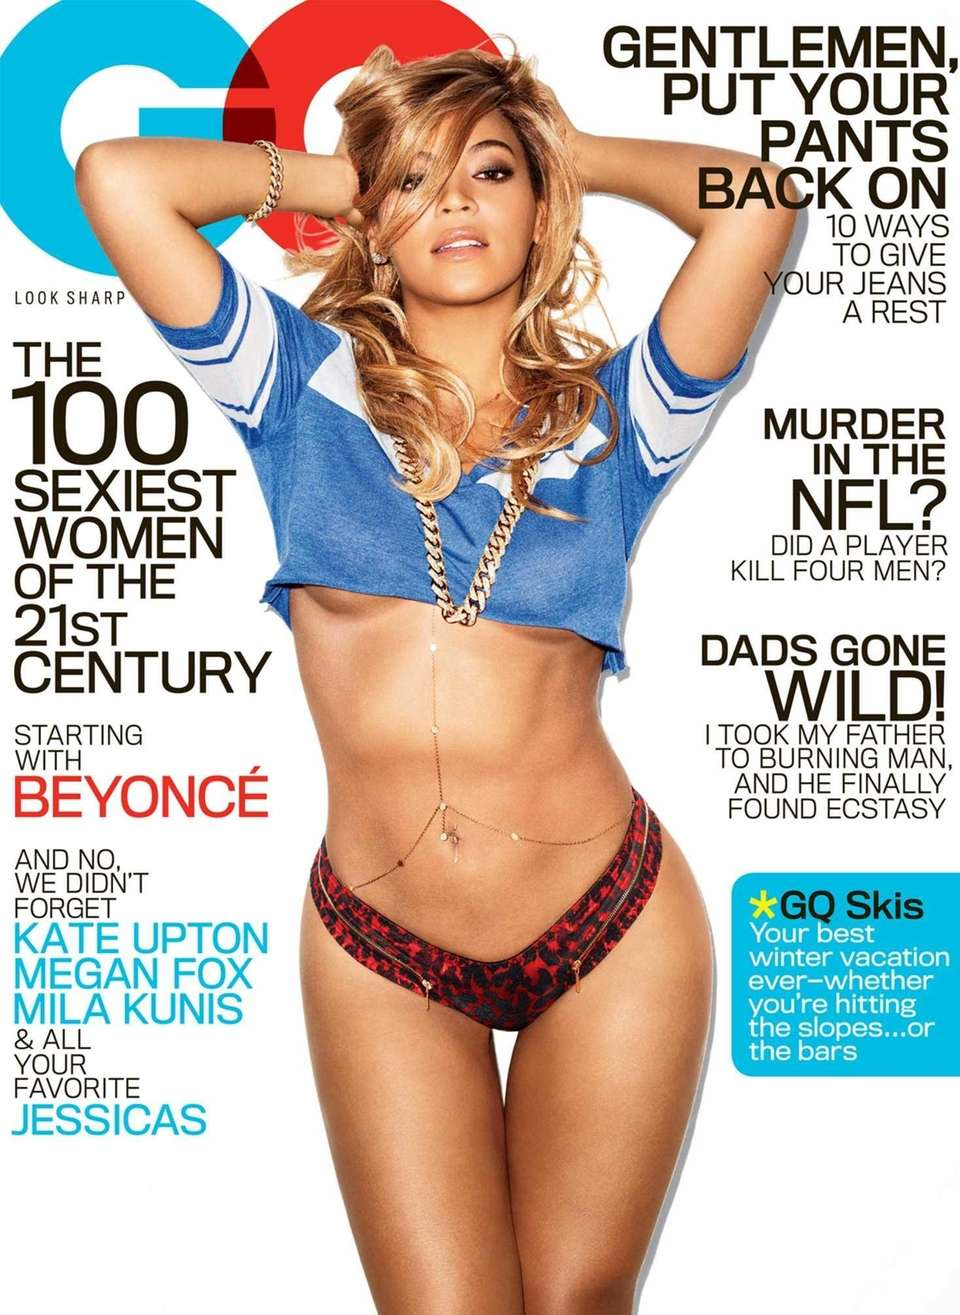 The February GQ cover featuring Beyonce. The issue